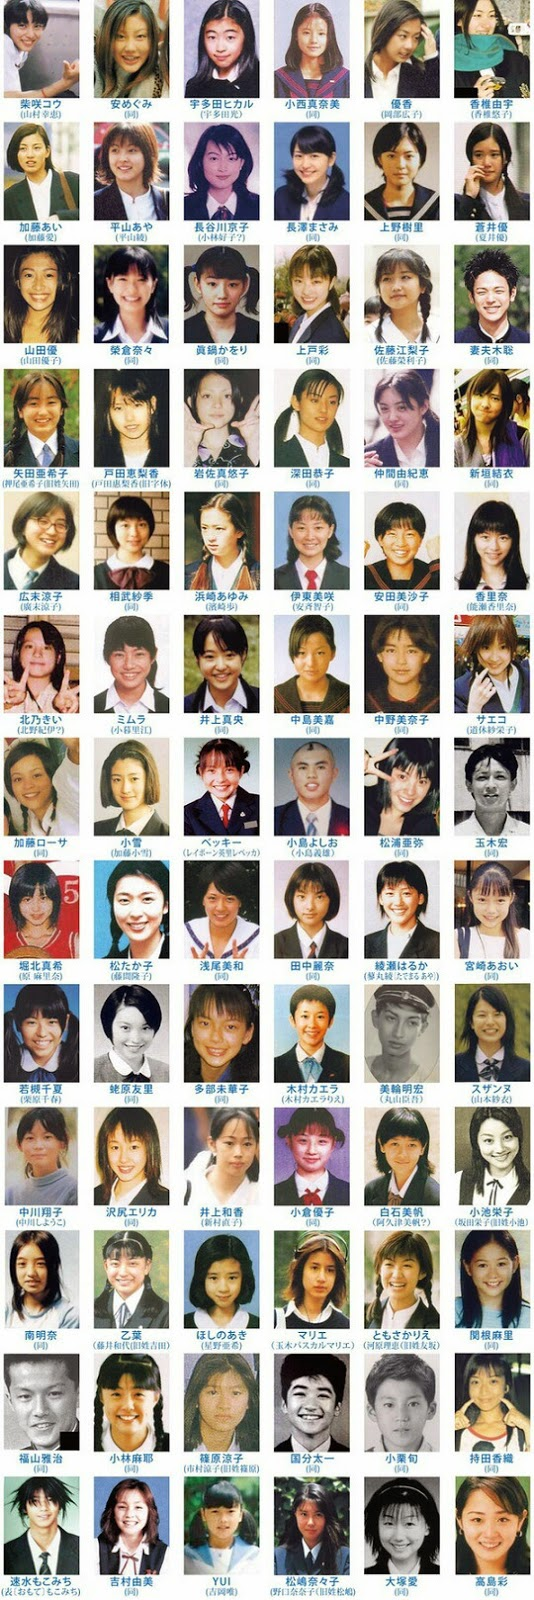 japan-idols-yearbook-photos